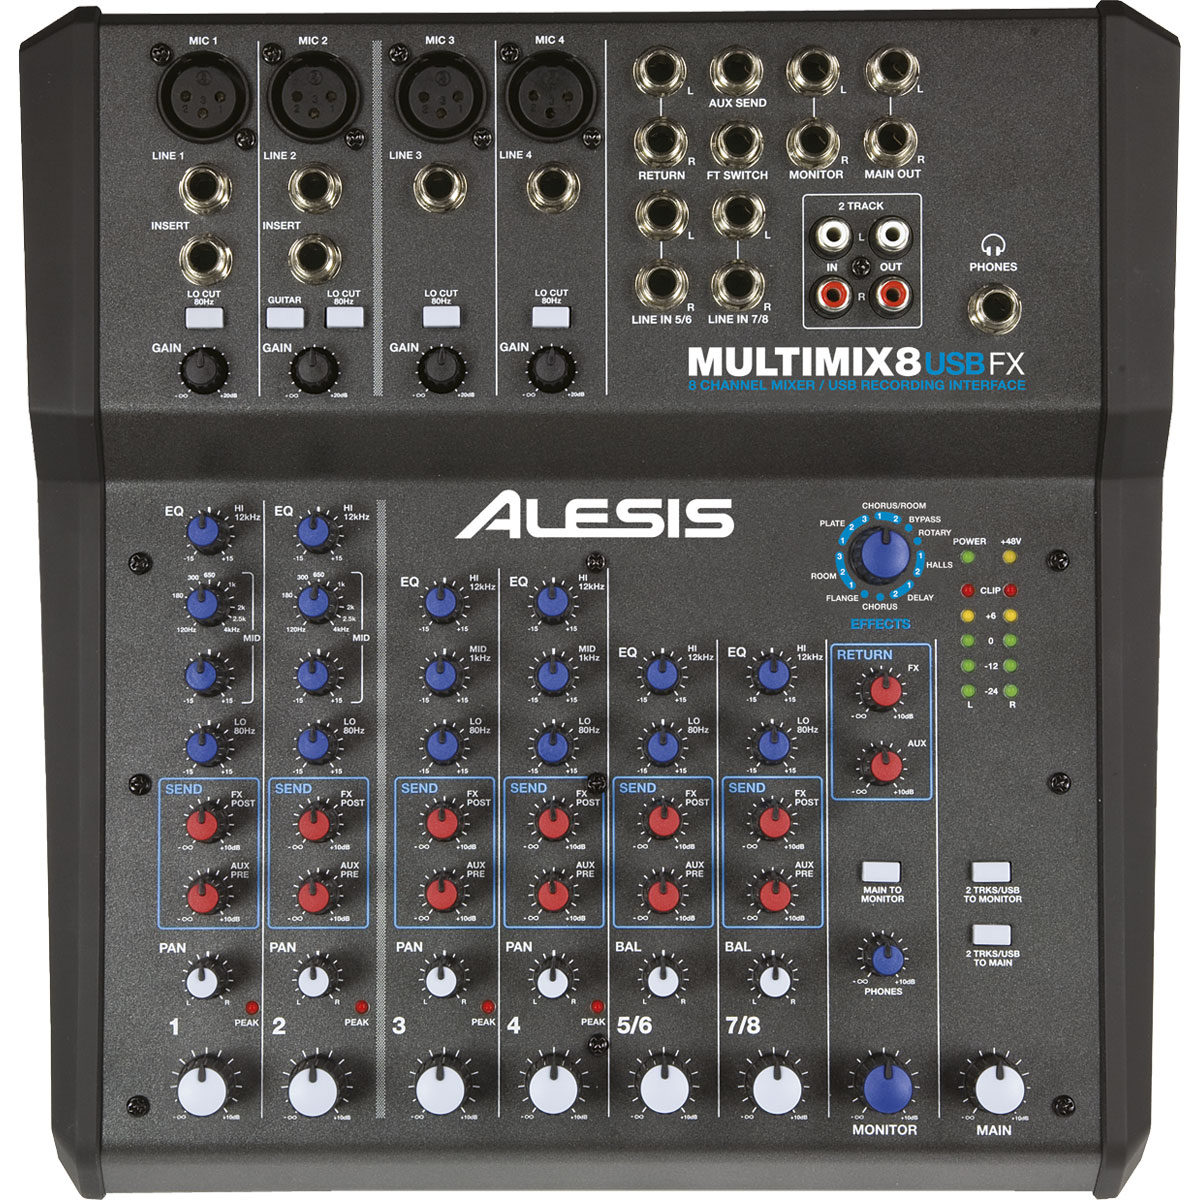 Alesis Multimix 8 Usb Fx Table De Mixage Alesis Sur Ldlc